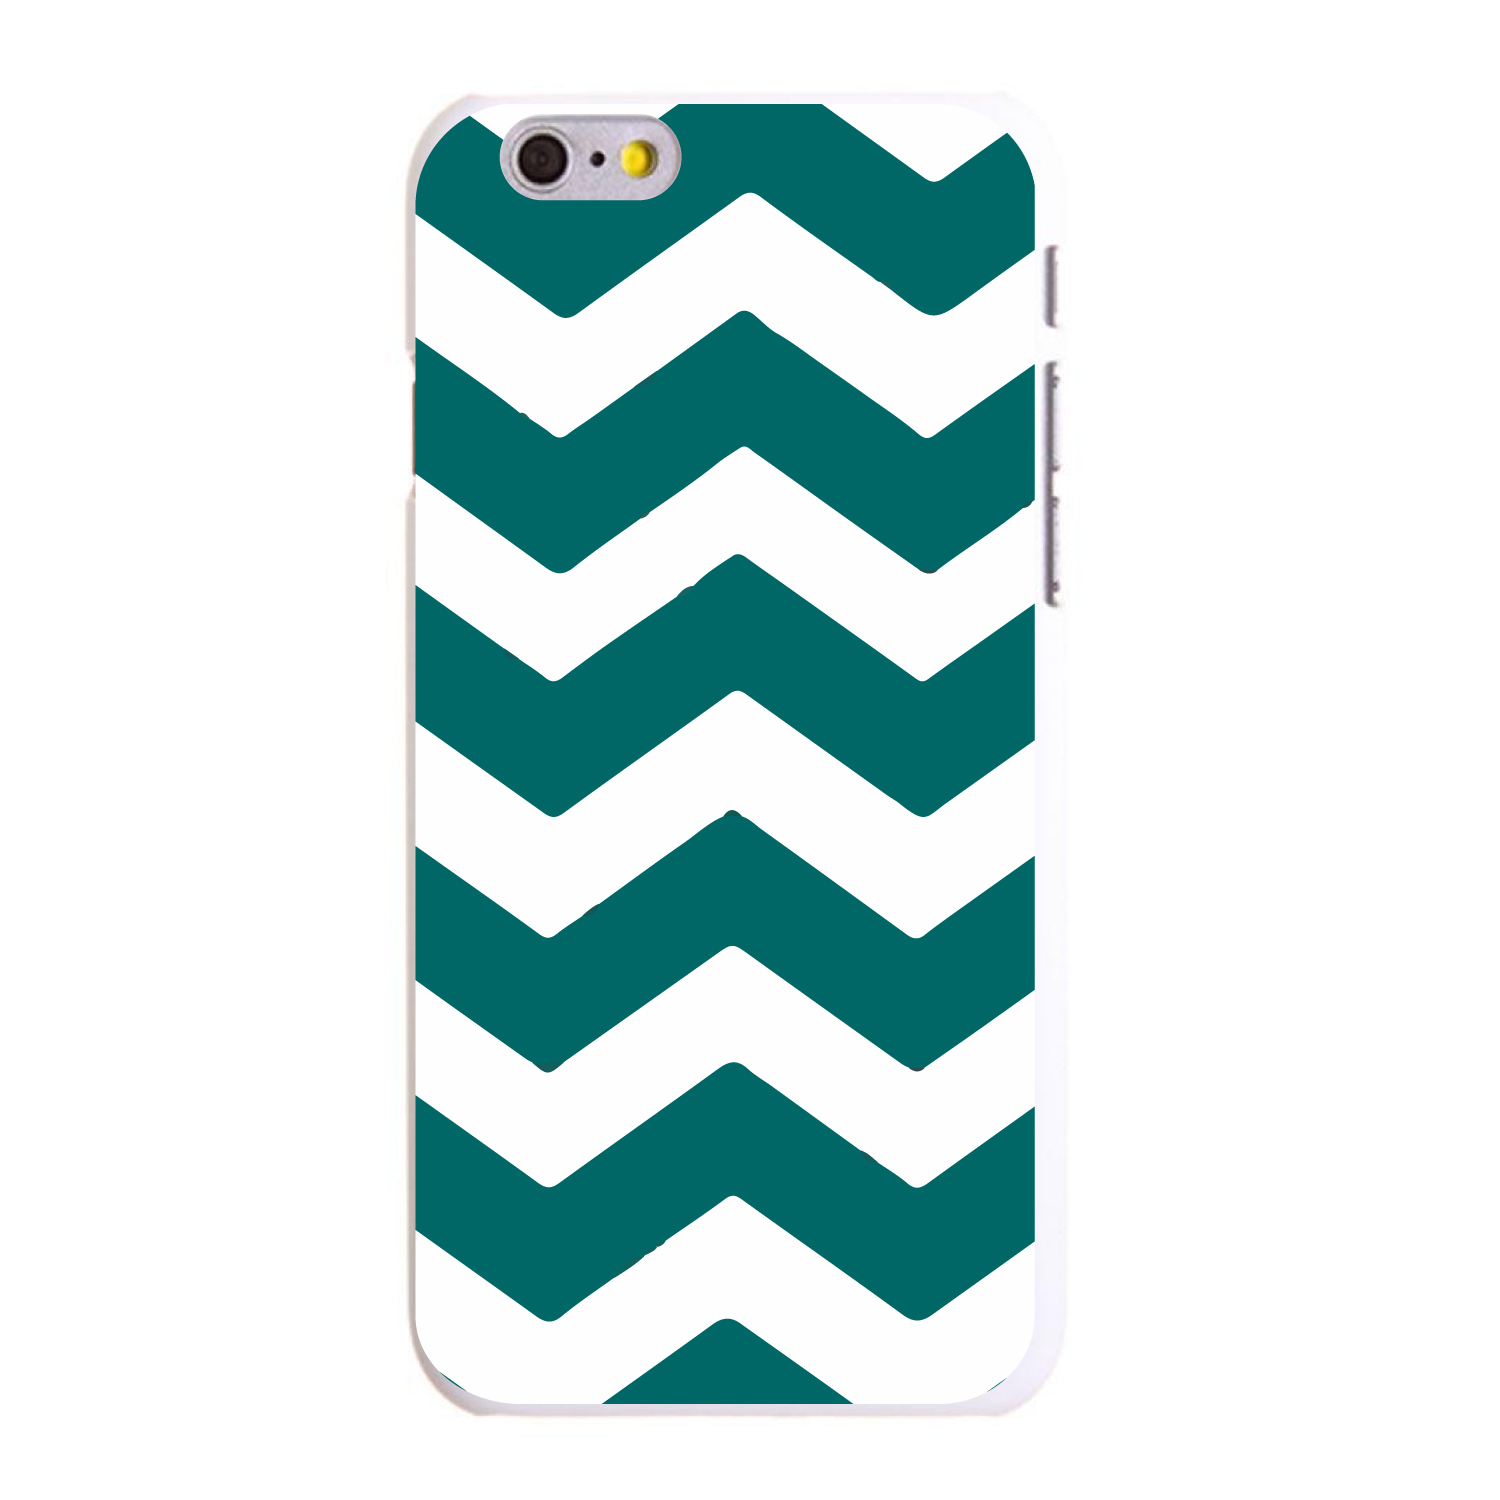 "CUSTOM White Hard Plastic Snap-On Case for Apple iPhone 6 PLUS / 6S PLUS (5.5"" Screen) - Teal White Chevron Stripes"